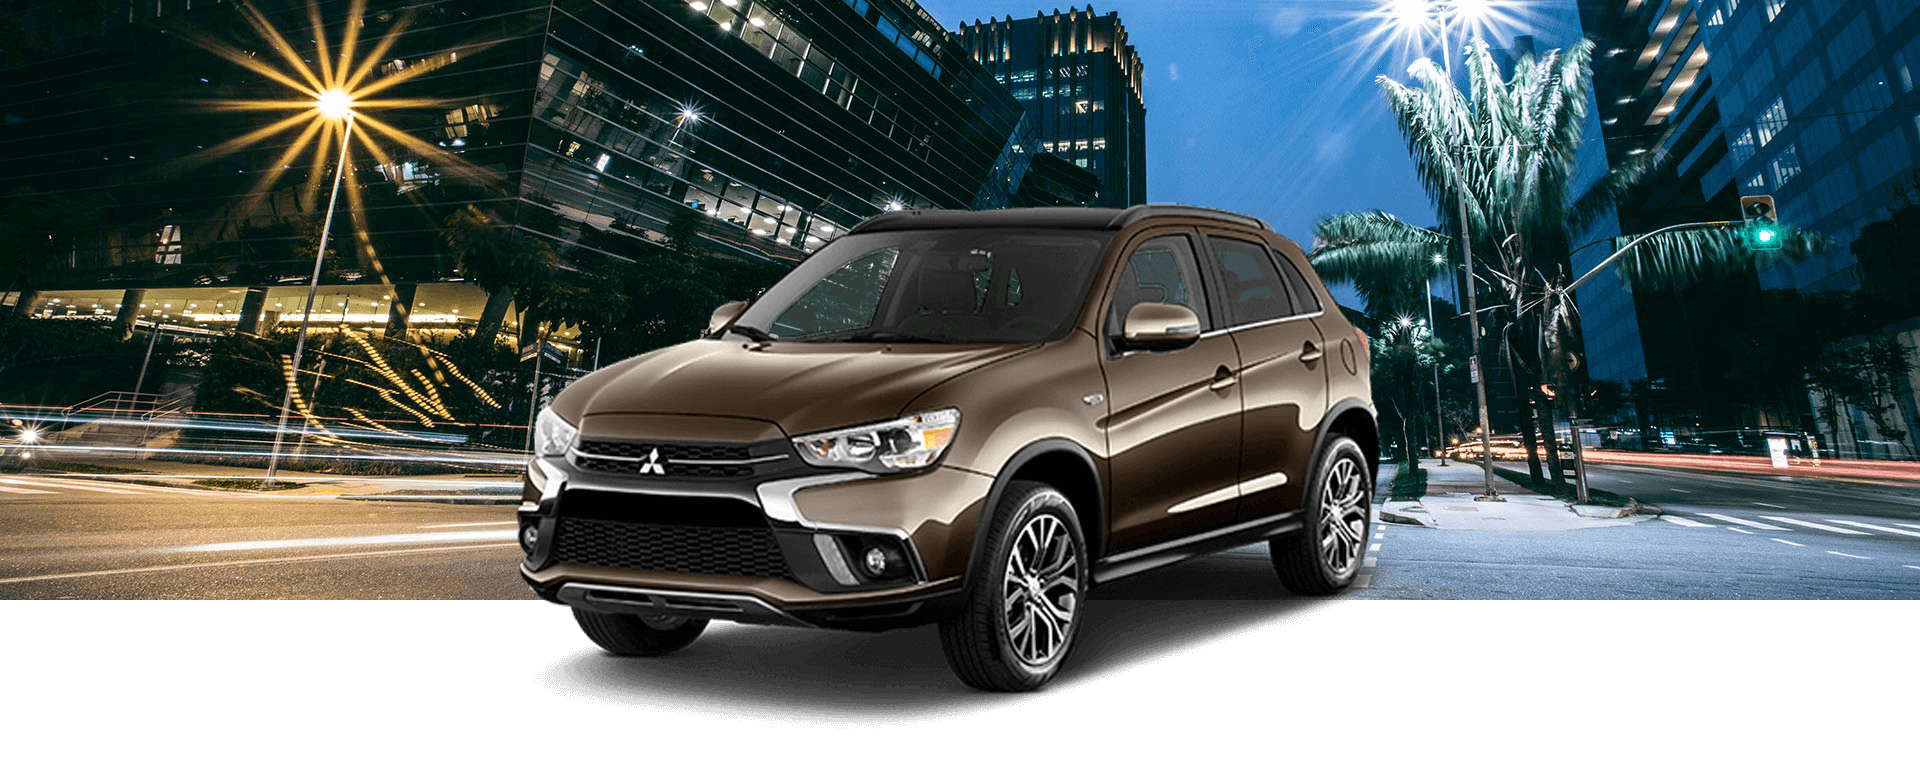 2018 Mitsubishi Outlander Sport with banner